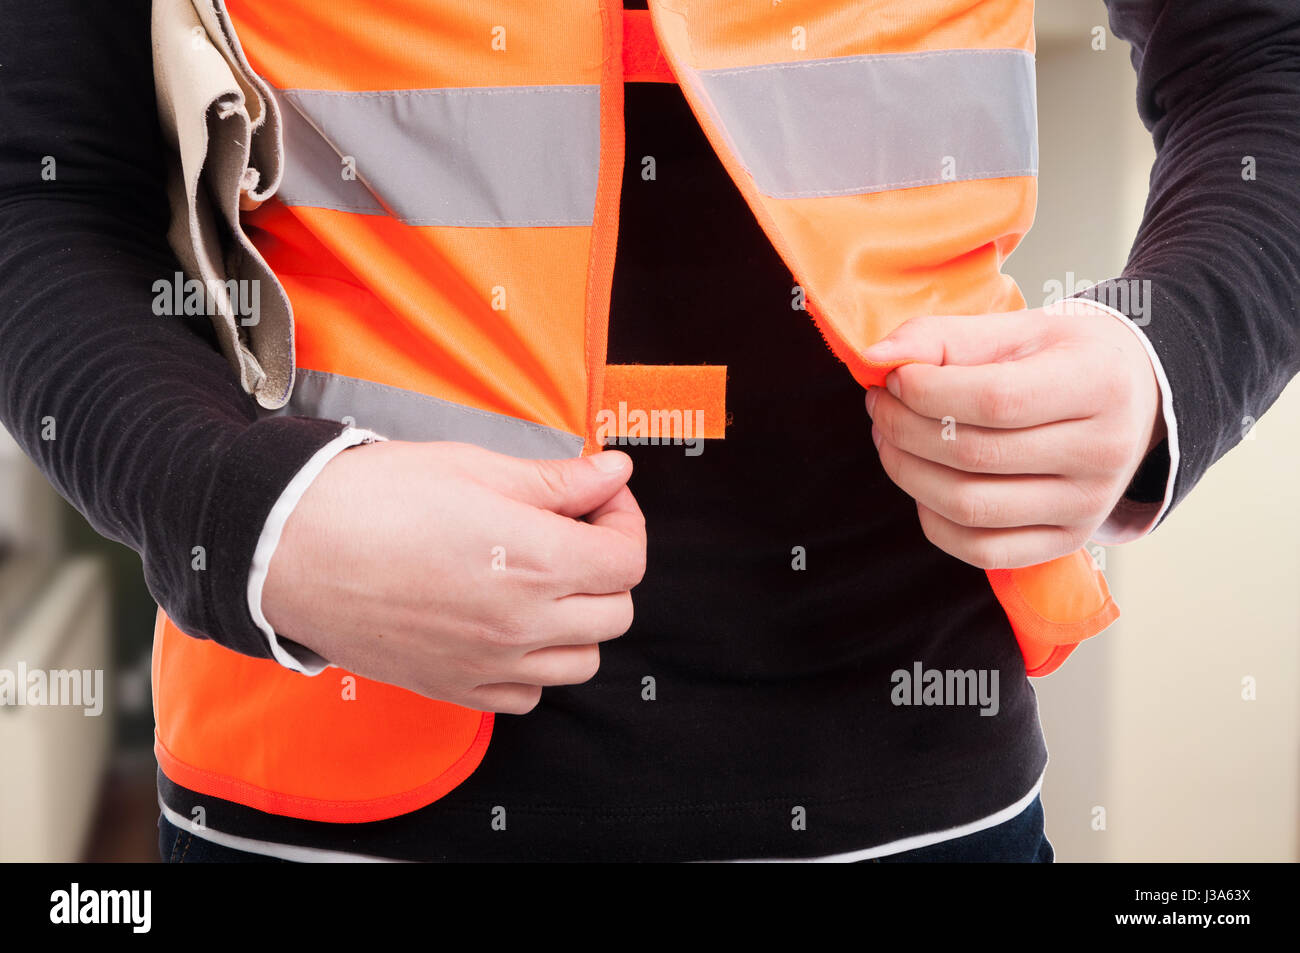 Closeup view of engineer with reflective vest getting ready for work - Stock Image